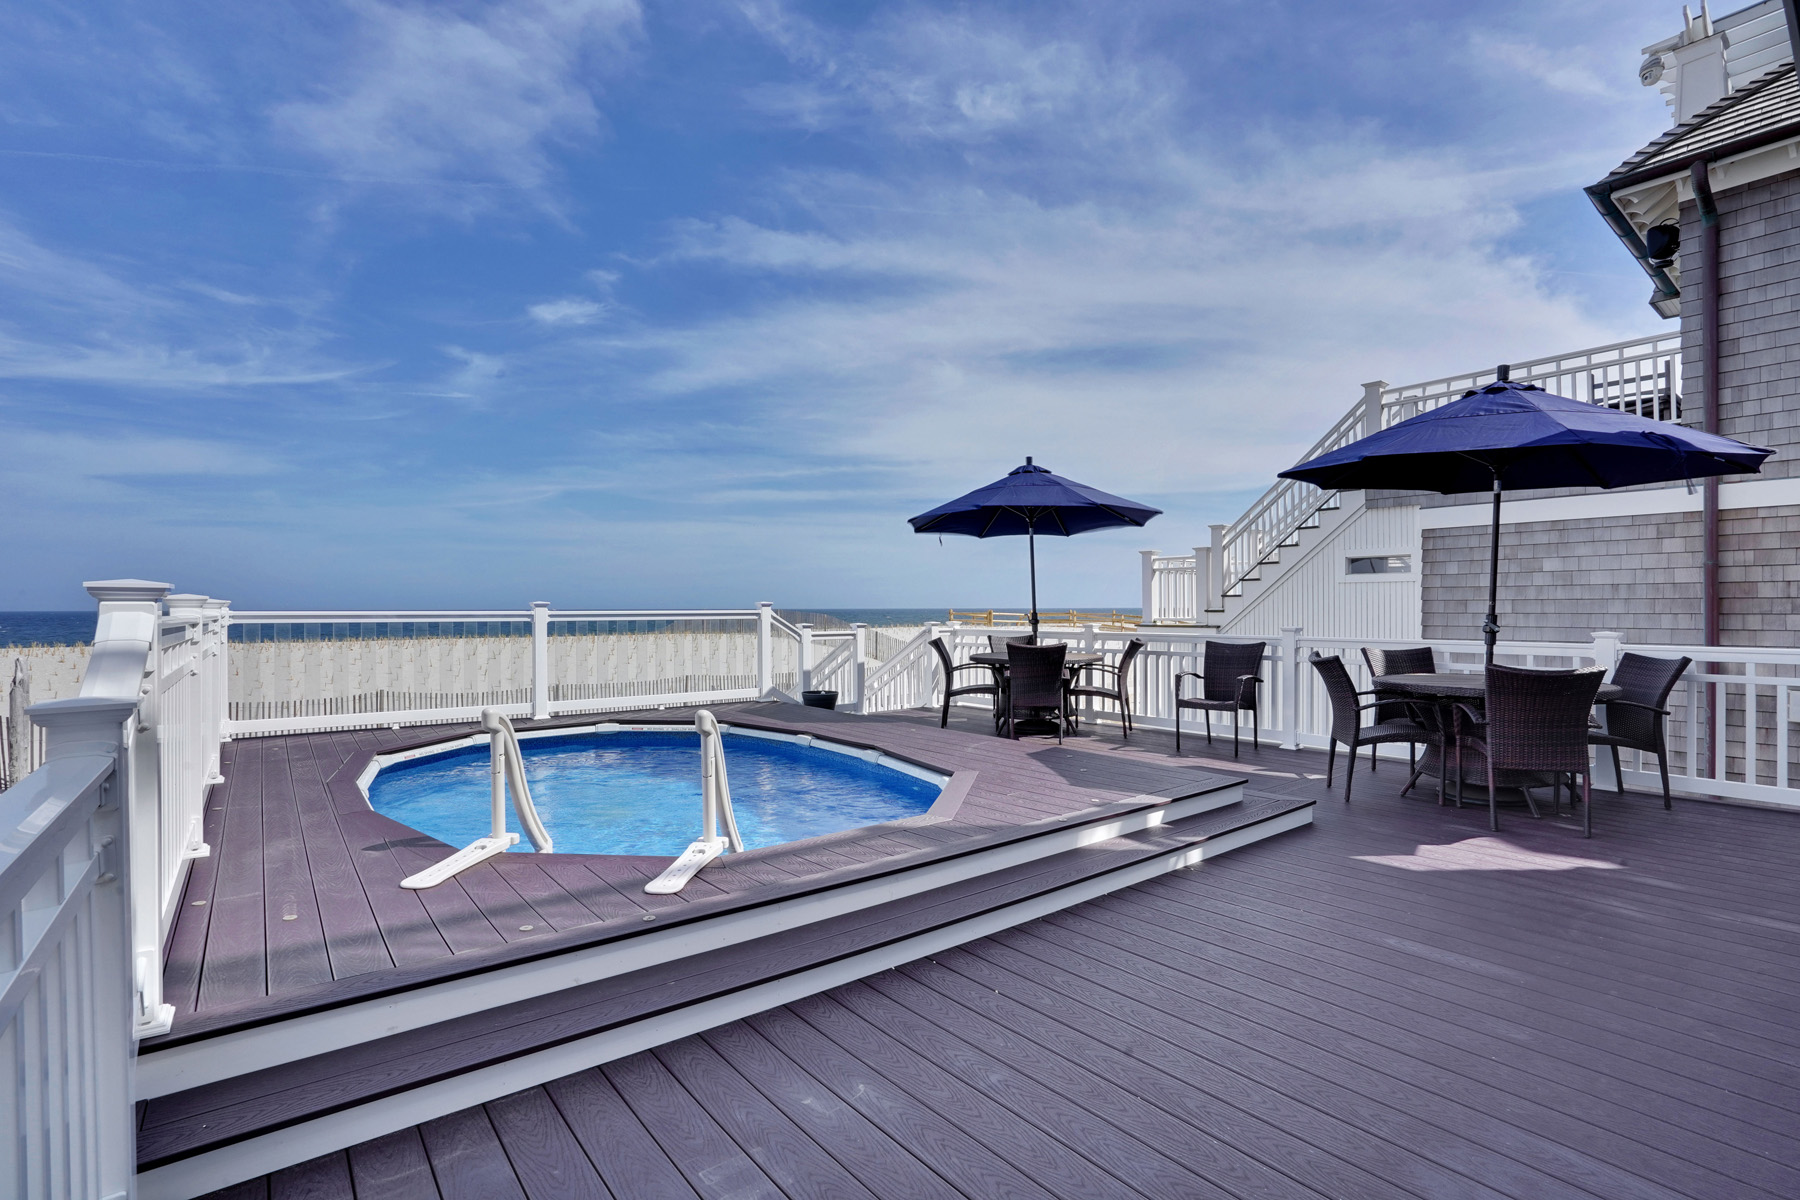 Moradia para Venda às Stunning Ocean Views From Every Level Of This Custom Built Oceanfront Home 3688 Ocean Terrace, Normandy Beach, Nova Jersey 08739 Estados Unidos